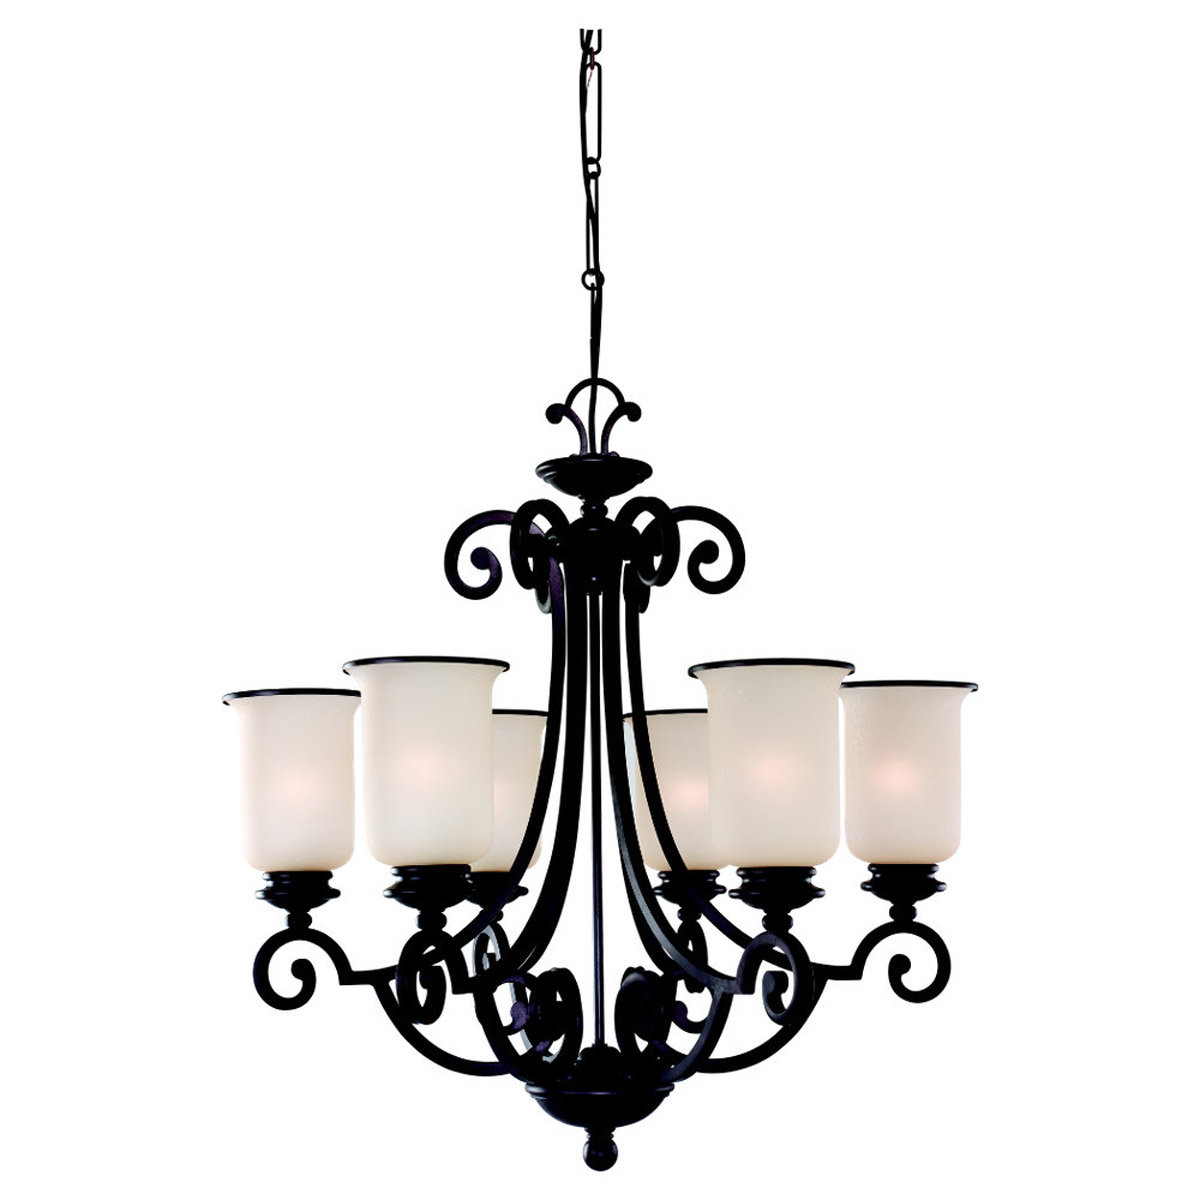 Sea Gull Lighting Acadia 6 Light Chandelier in Misted Bronze 31146-814